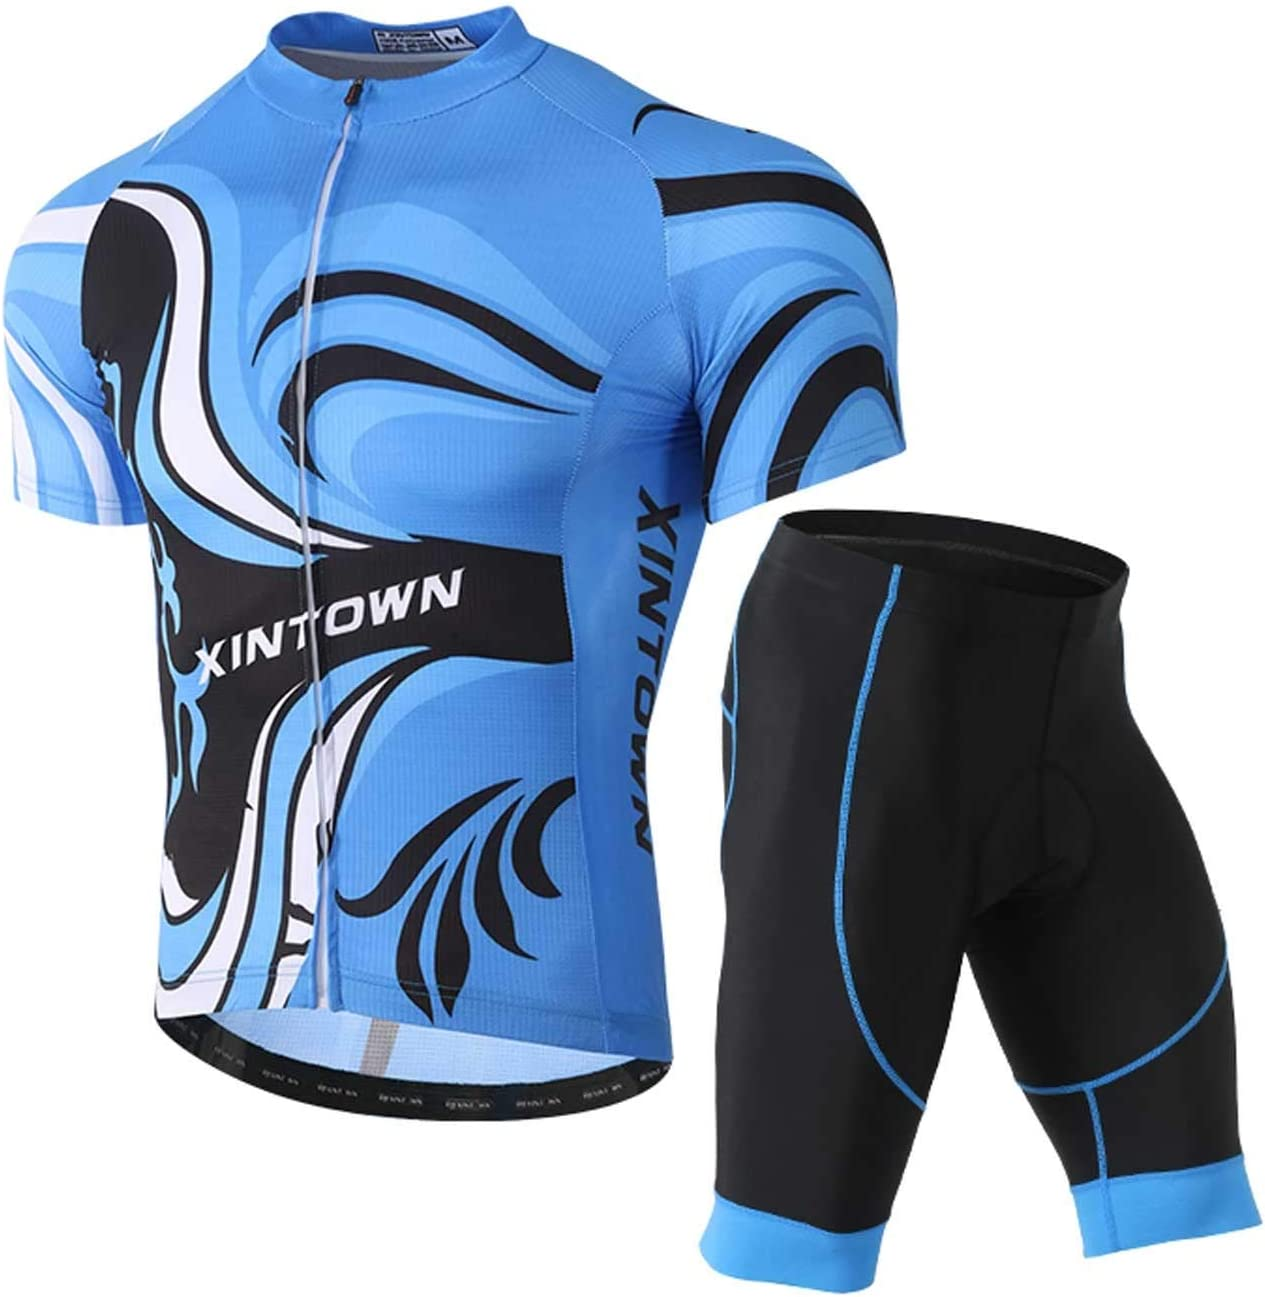 Men/'s Cycling Bike Sports Uniforms Short Sleeve Jersey Bibs Shorts Kits Suits